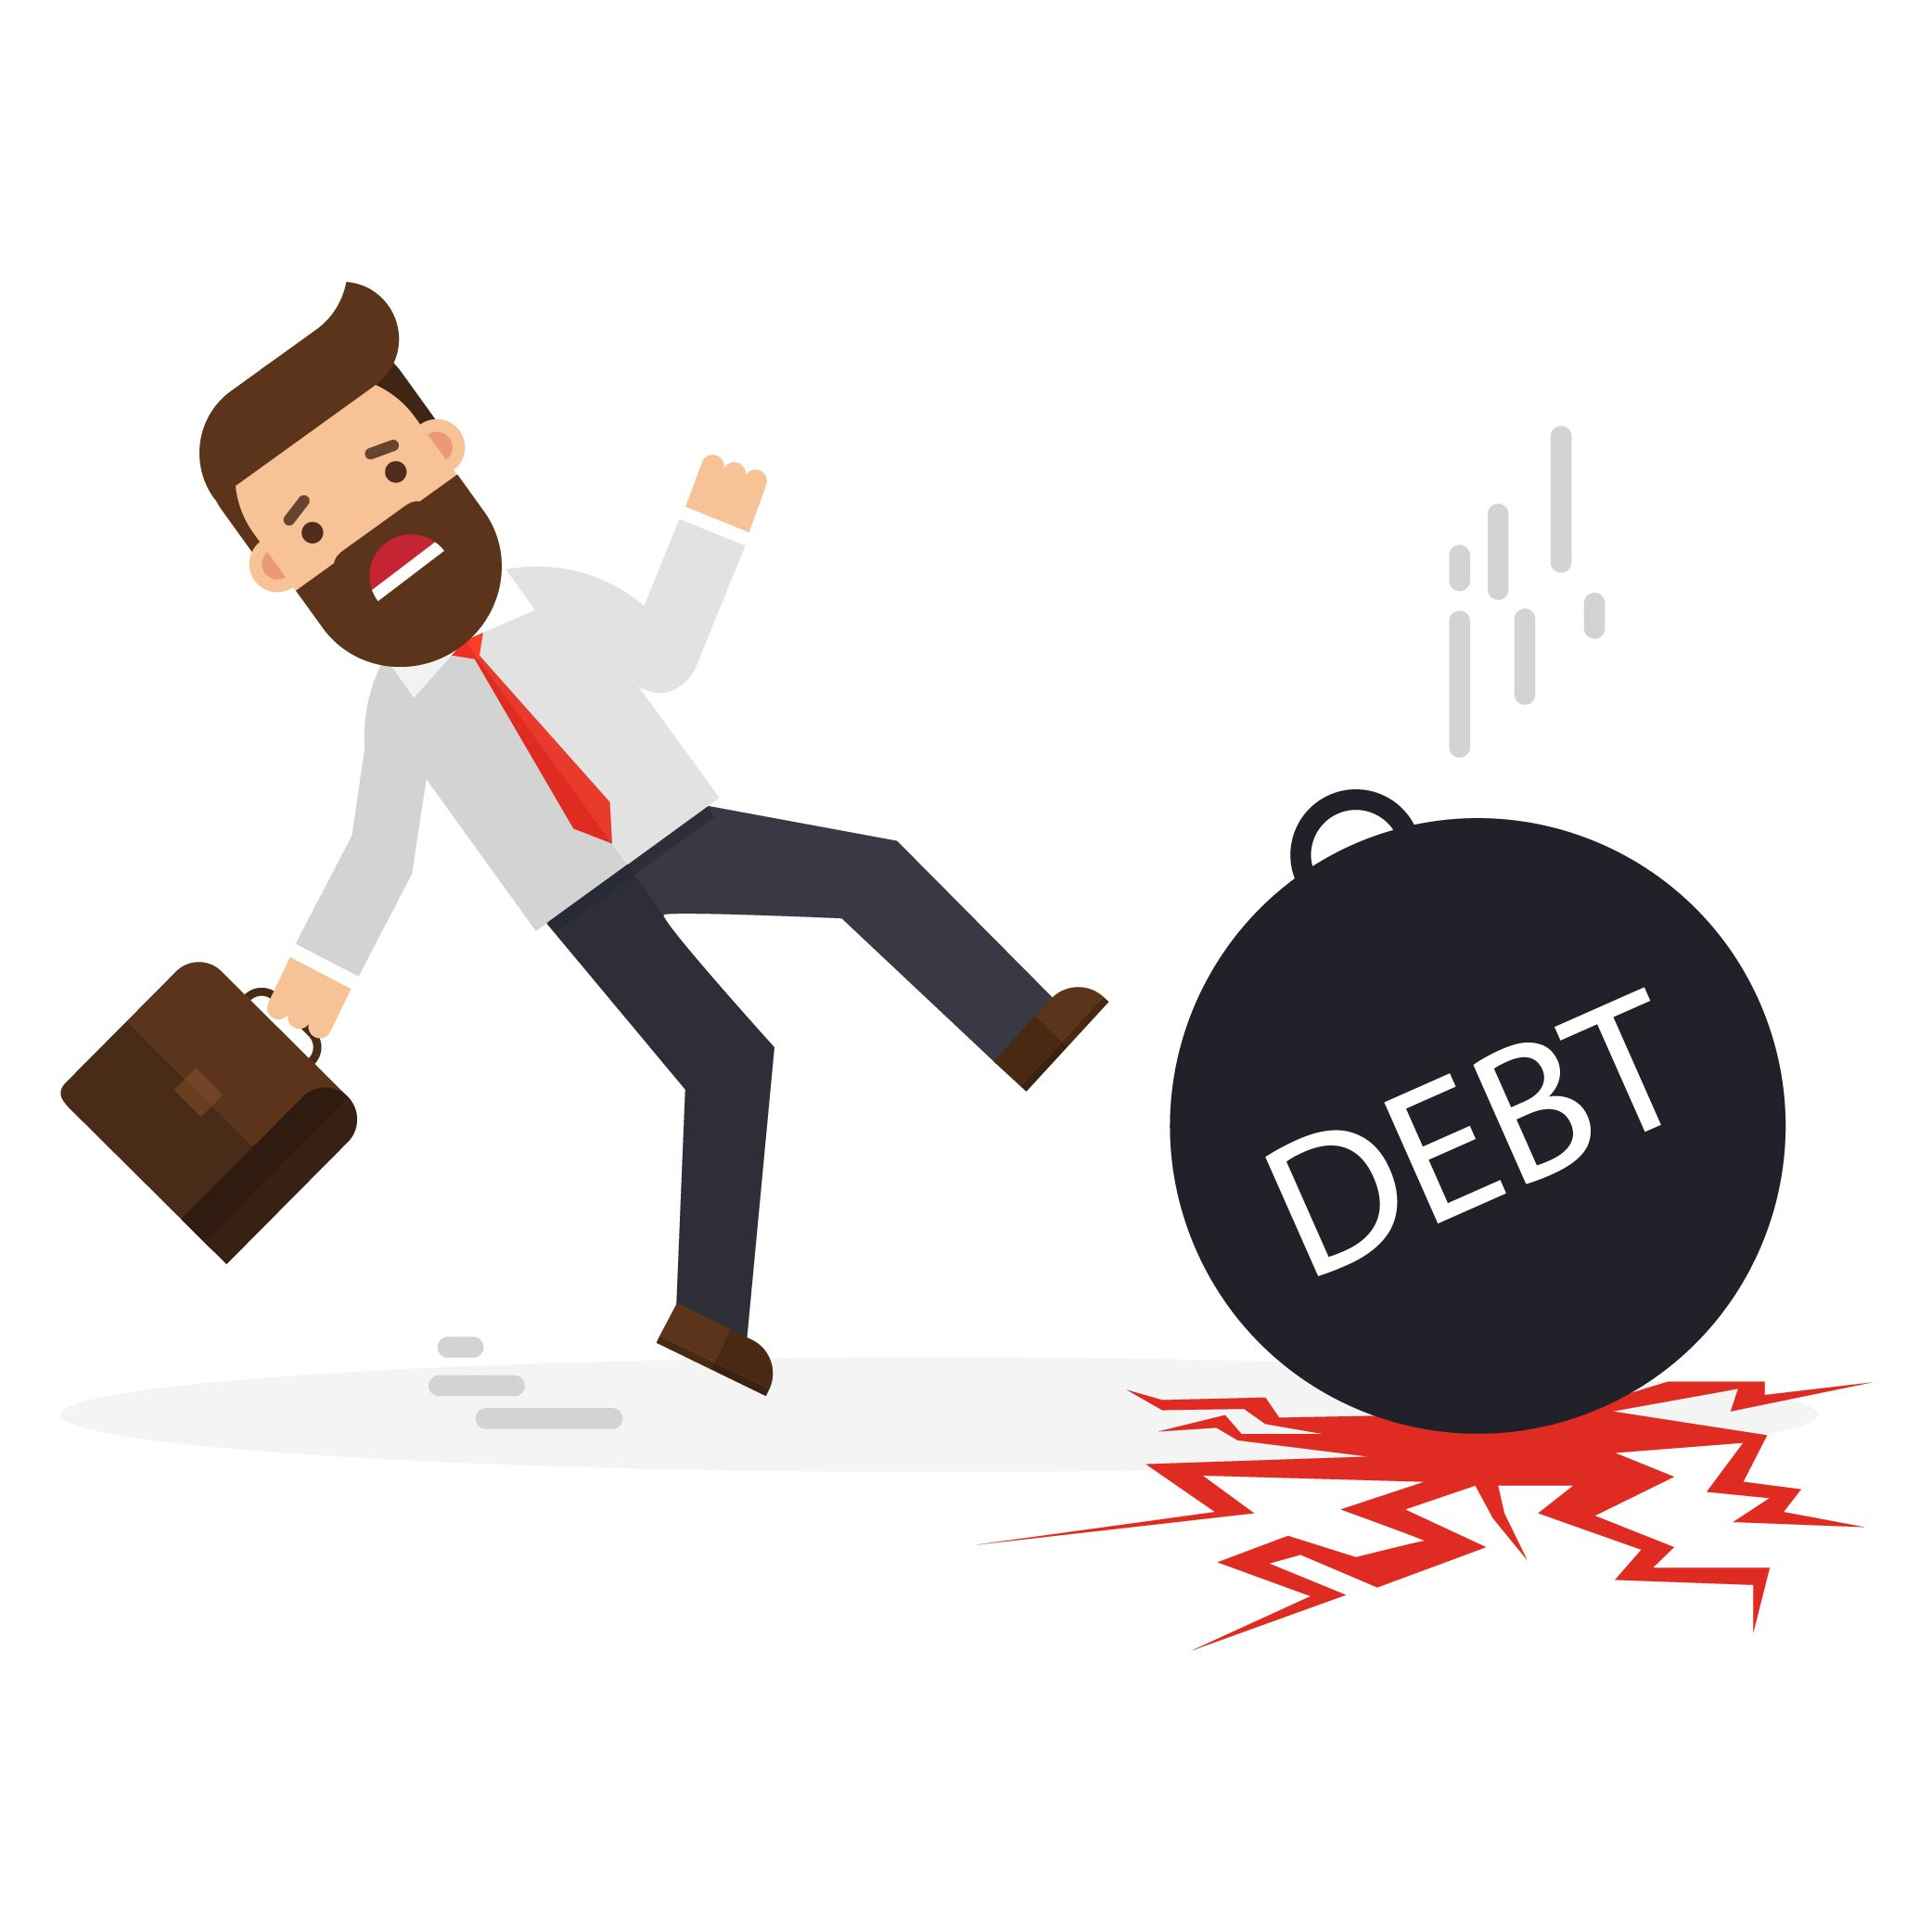 Debt bomb falling in front of businessman